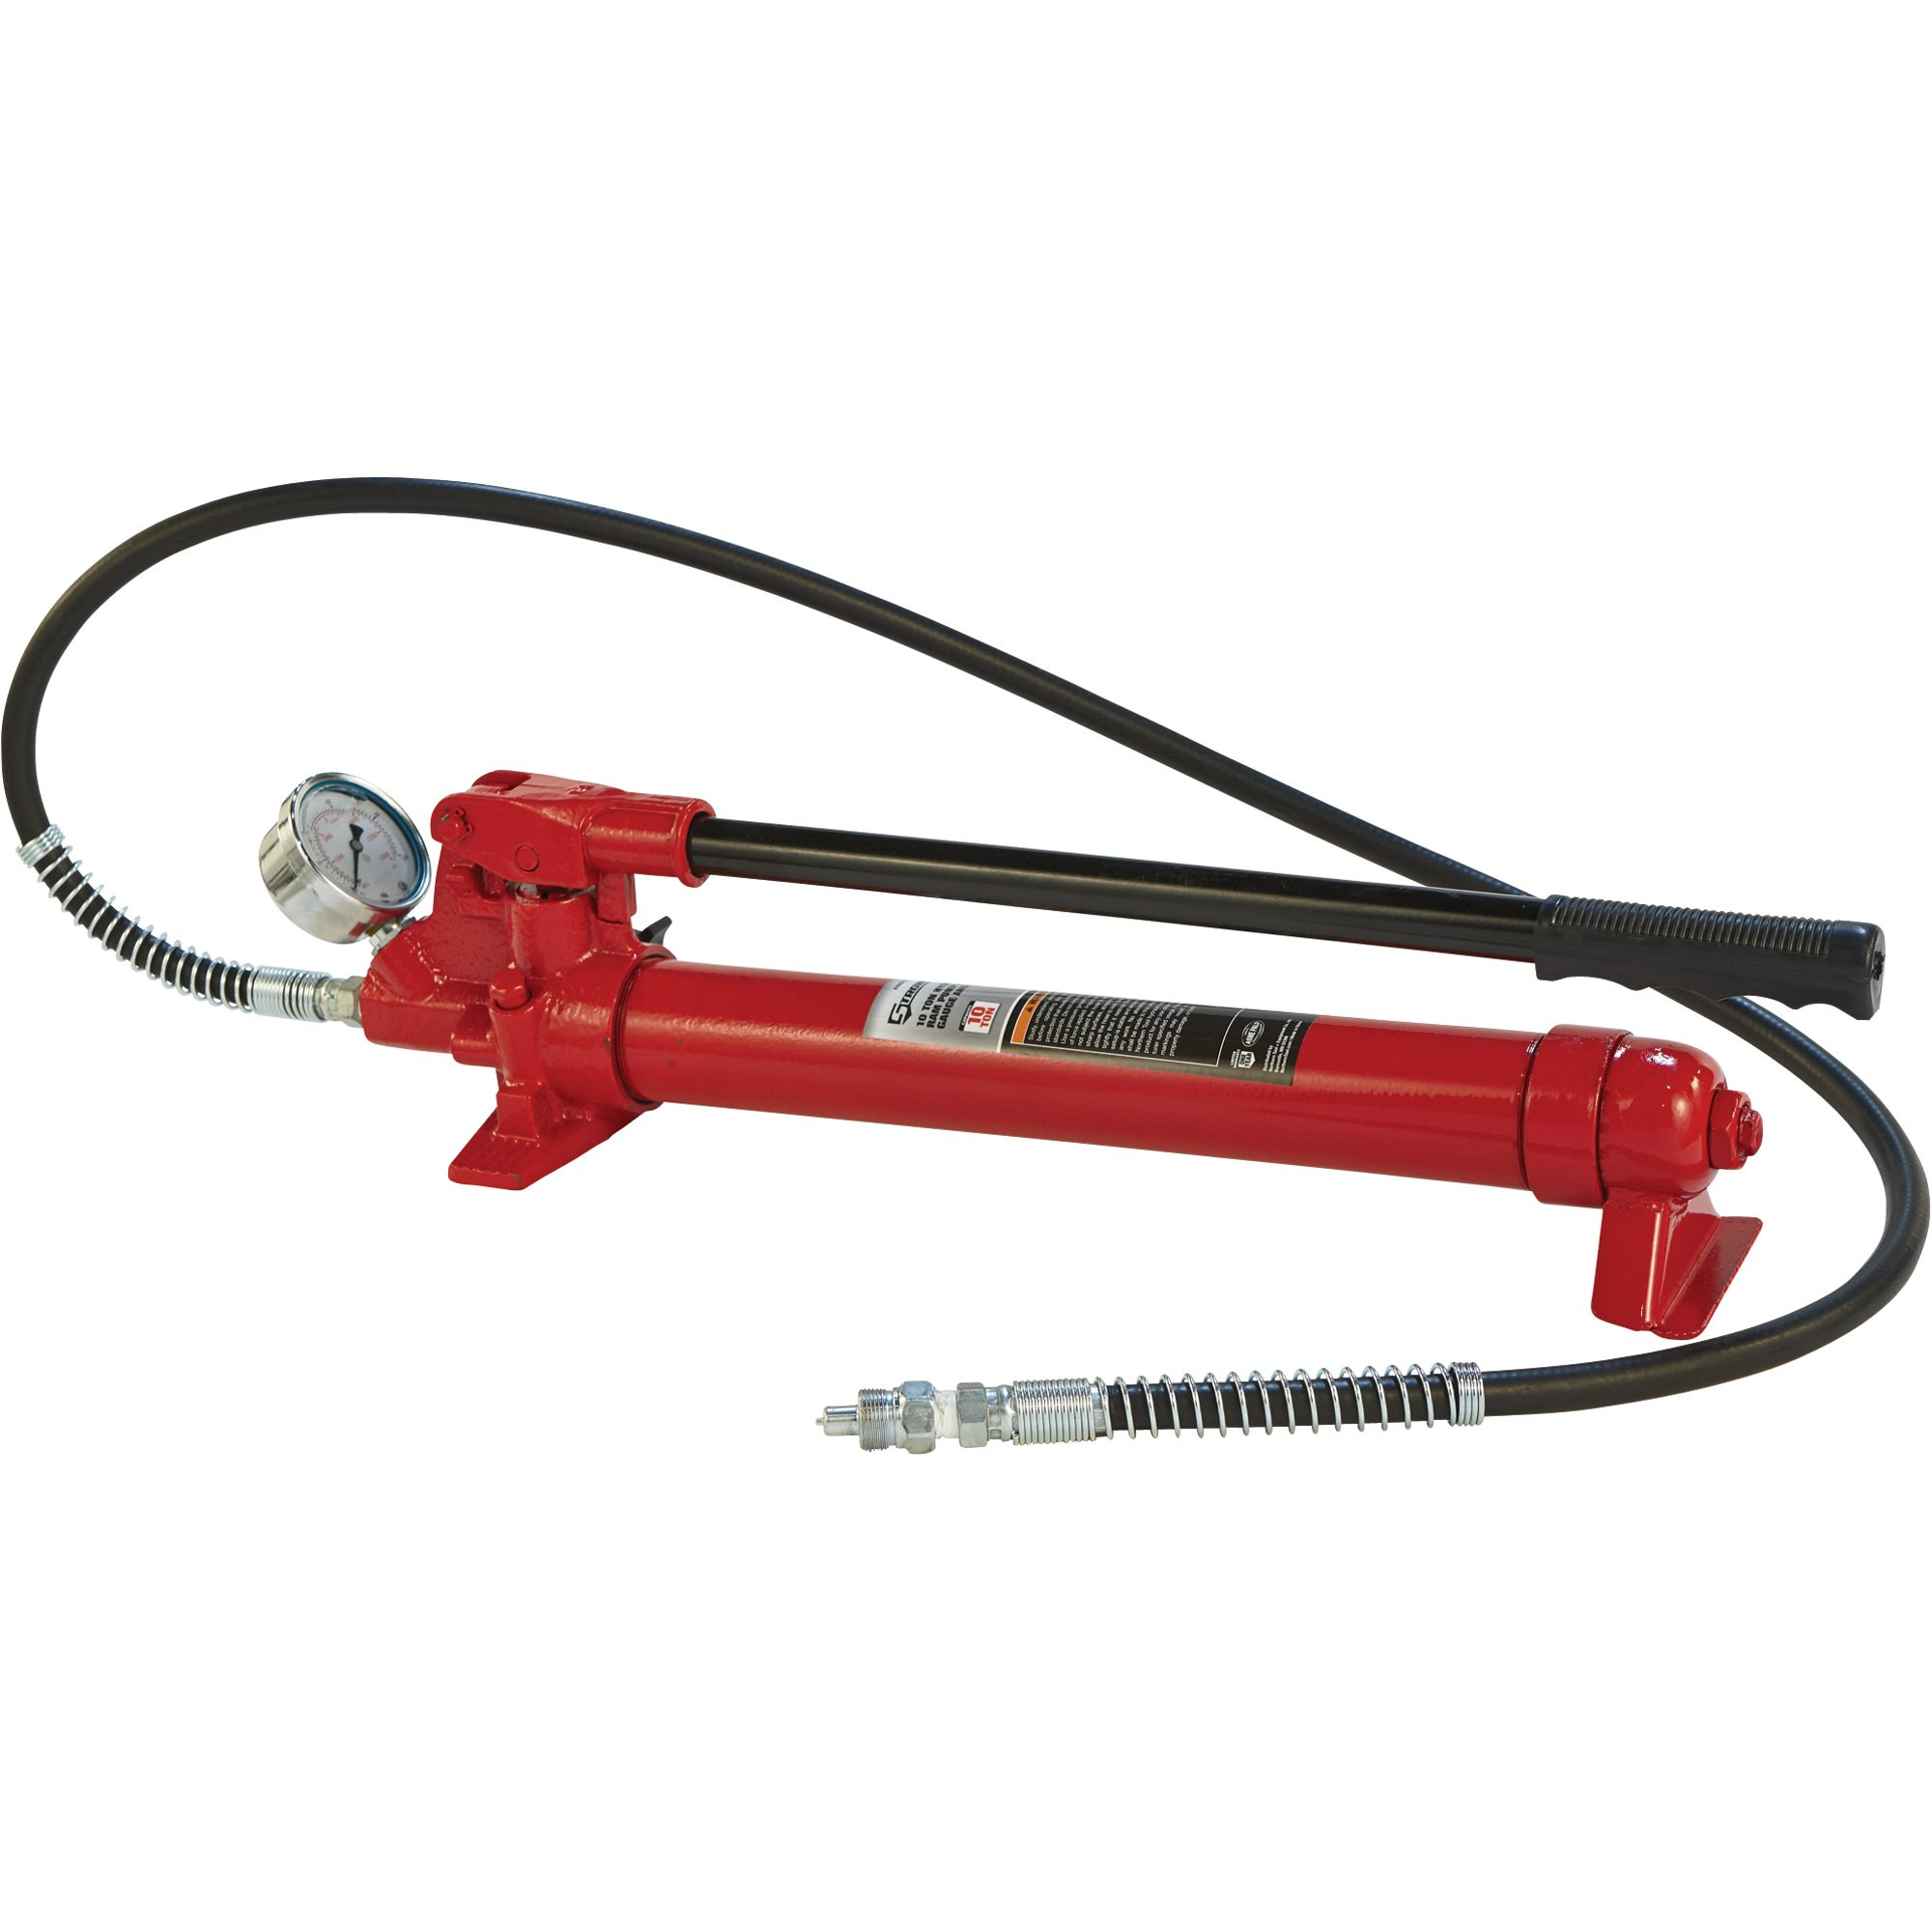 Strongway Hydraulic Pump with Gauge and Hose - 10-Ton Capacity